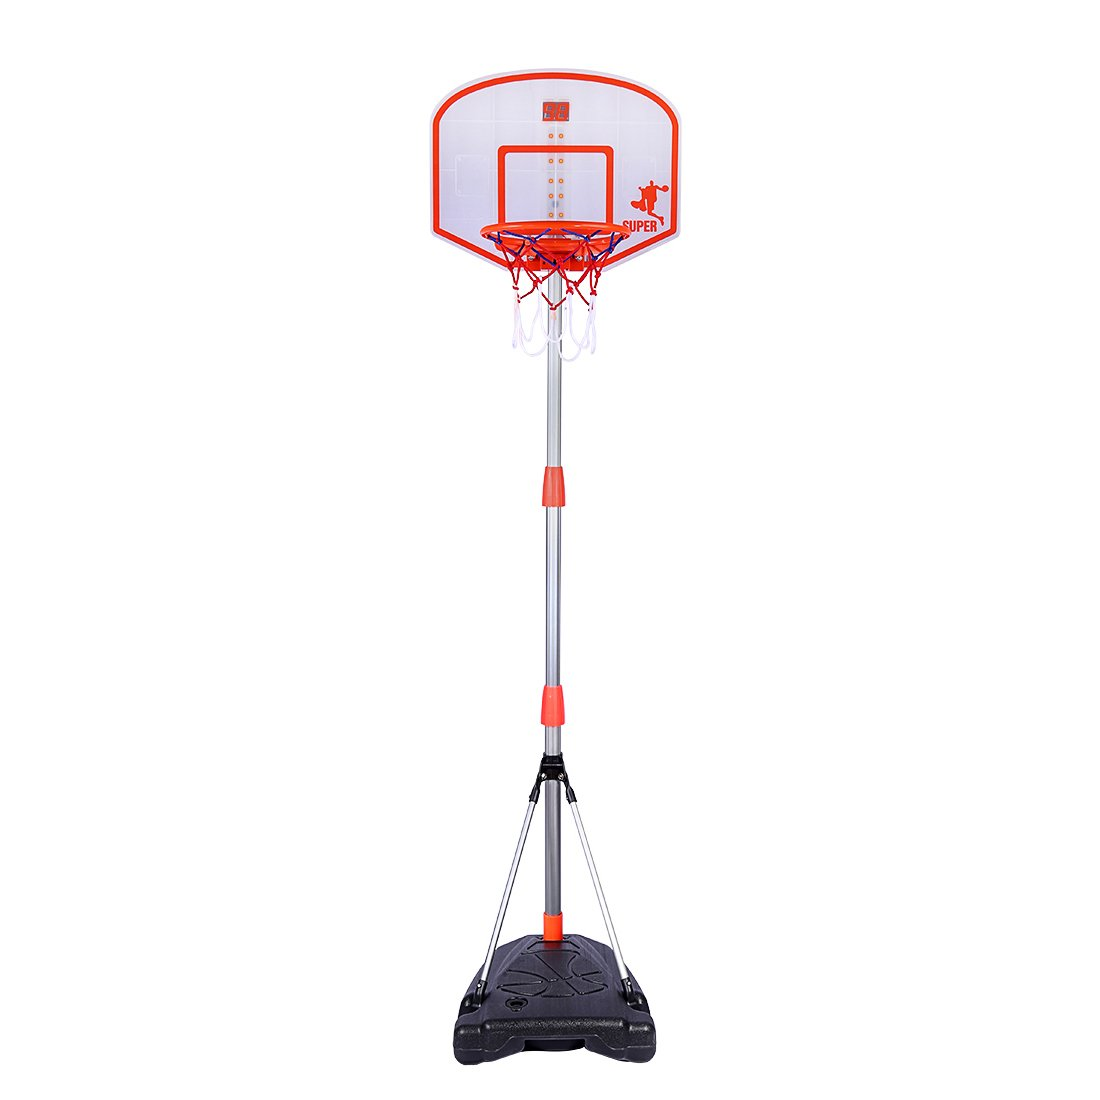 Yamix Kids Basketball Hoop Basketball Stand Adjustable Height to 1.2M Kids Basketball Goal for Kids Children Toddlers Indoor Outdoor by Yamix